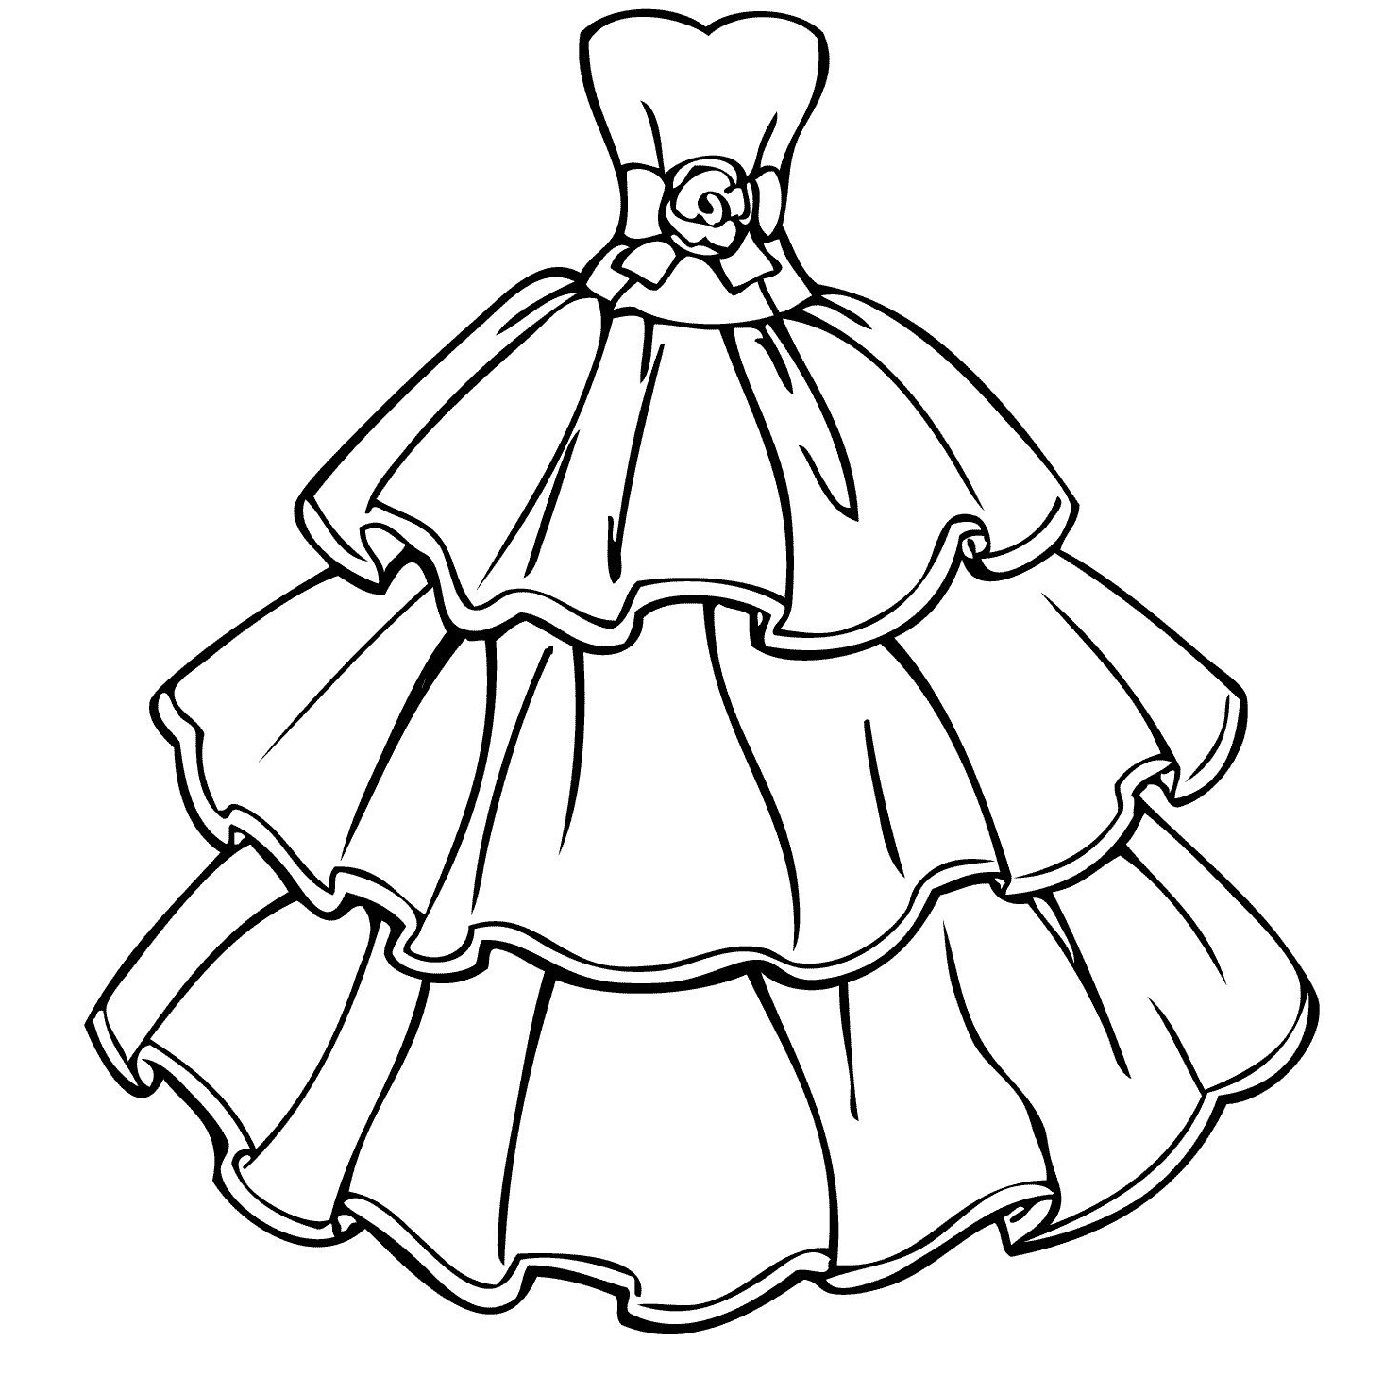 Cute Wedding Dress Coloring Pages